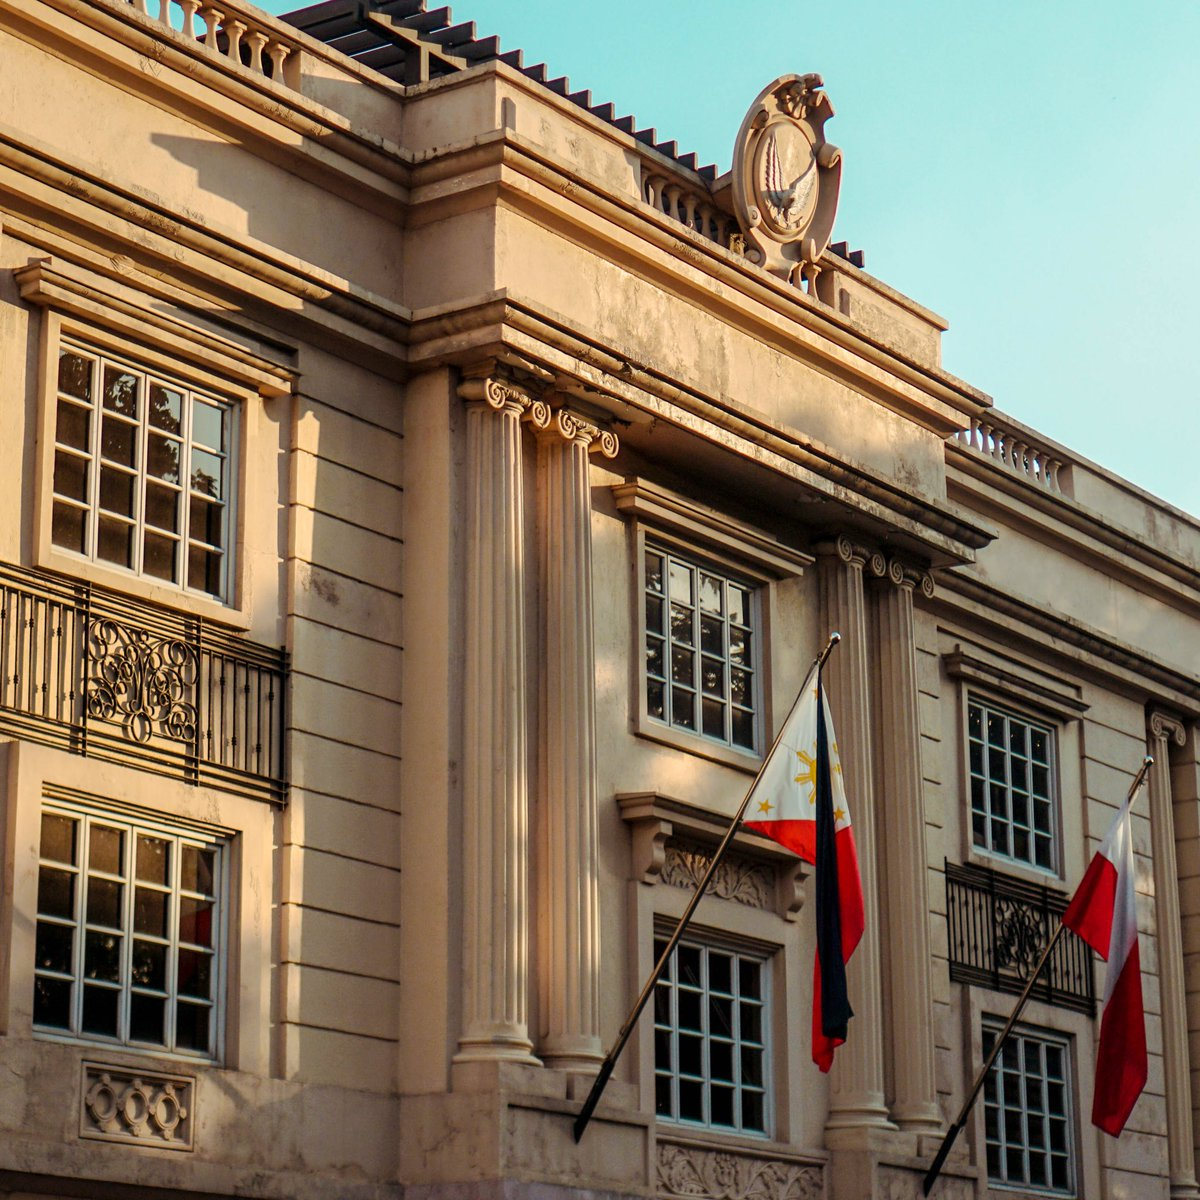 Some of Intramuros' Architecture. <br>http://pic.twitter.com/Yoyh9Lil80